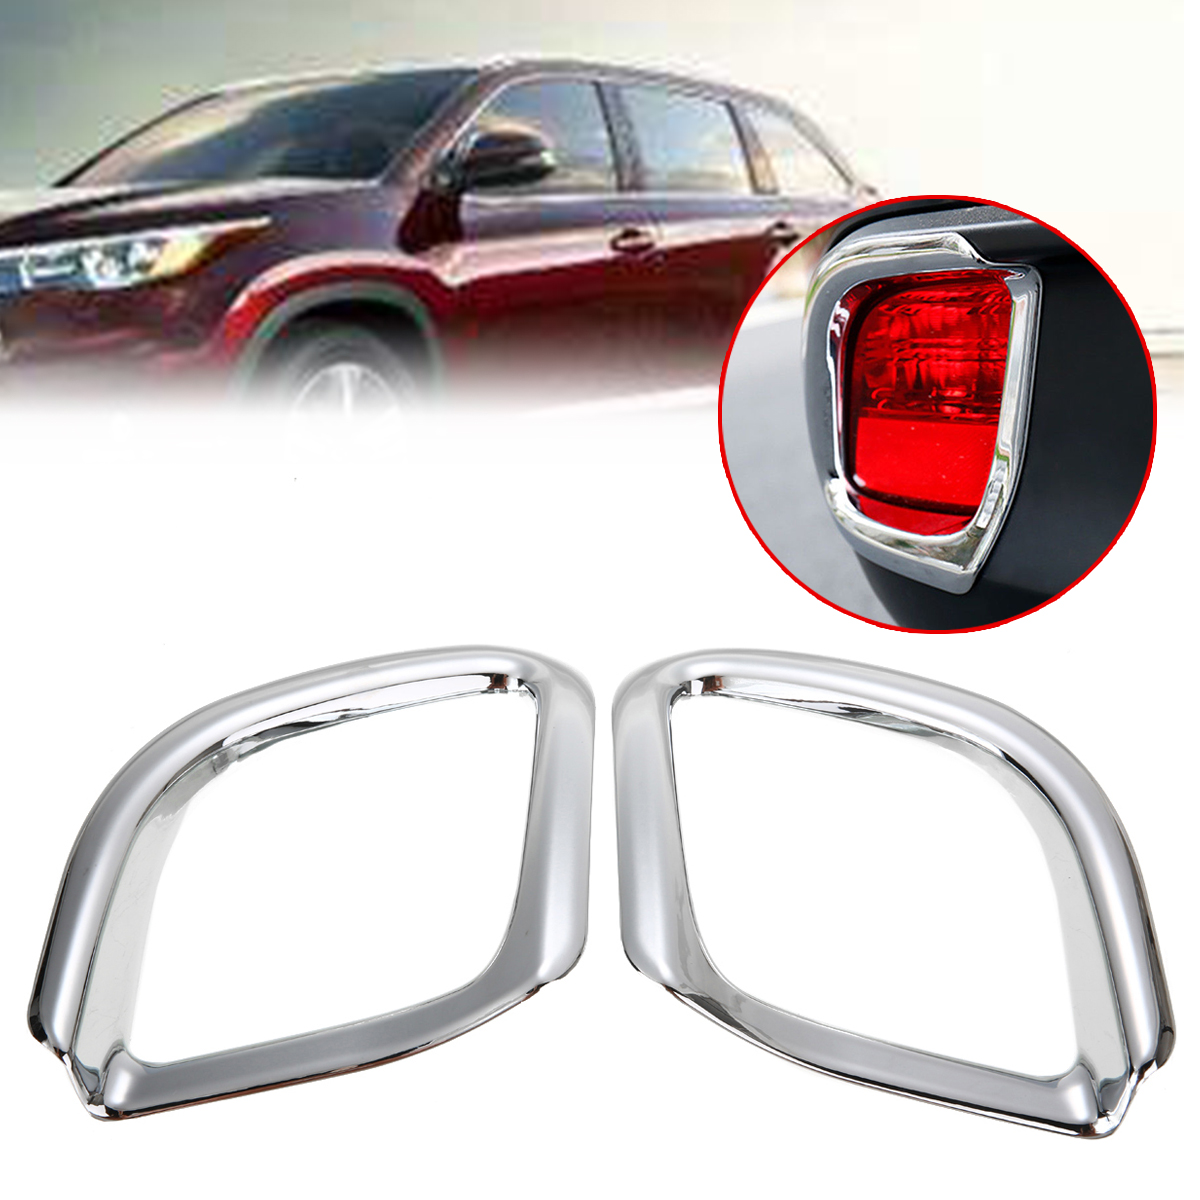 Car ABS Chrome Rear Fog Light Lamp For Toyota Highlander//Kluger 2014-2018